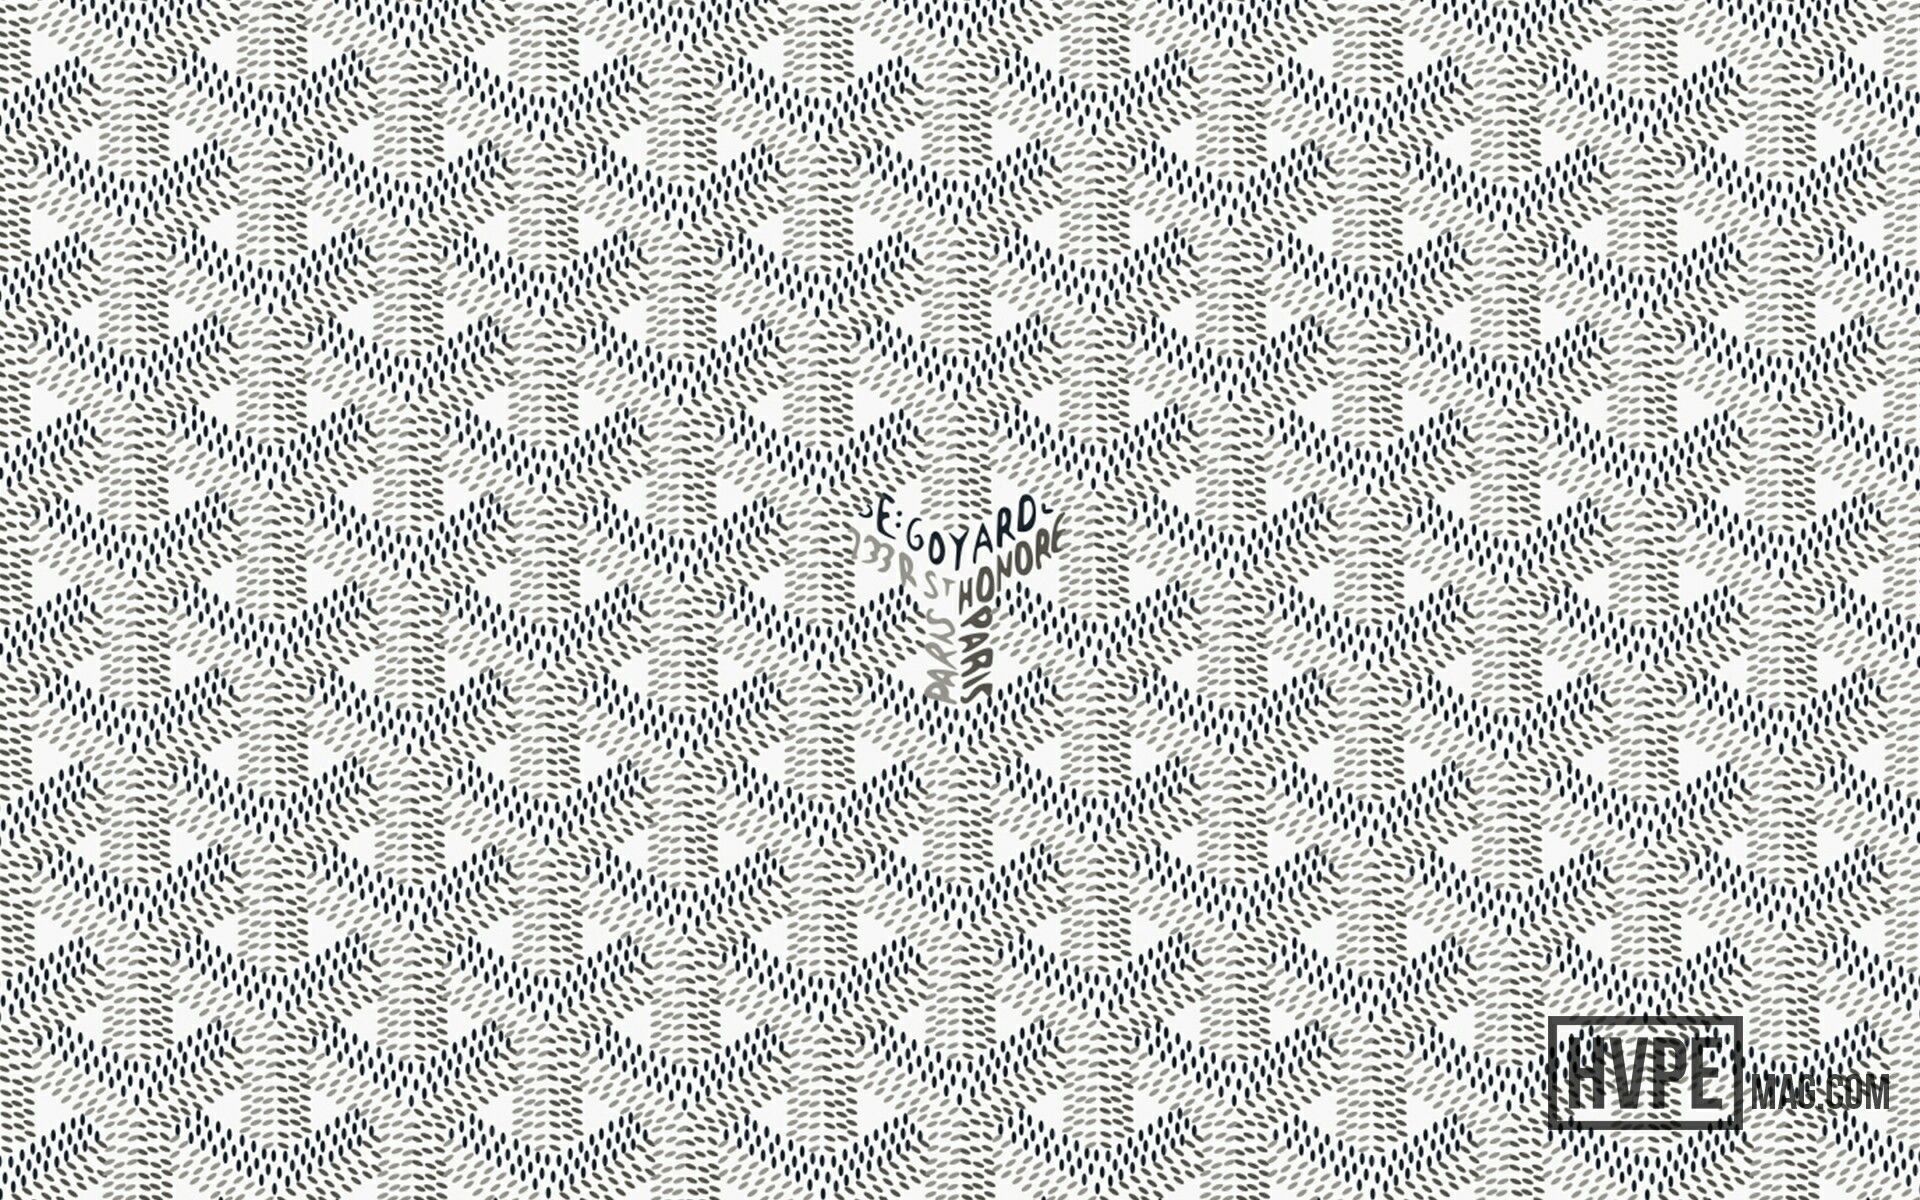 Pin By Guillermo Dieguez On Goyard Monogram Wallpaper Hype Wallpaper Wallpaper